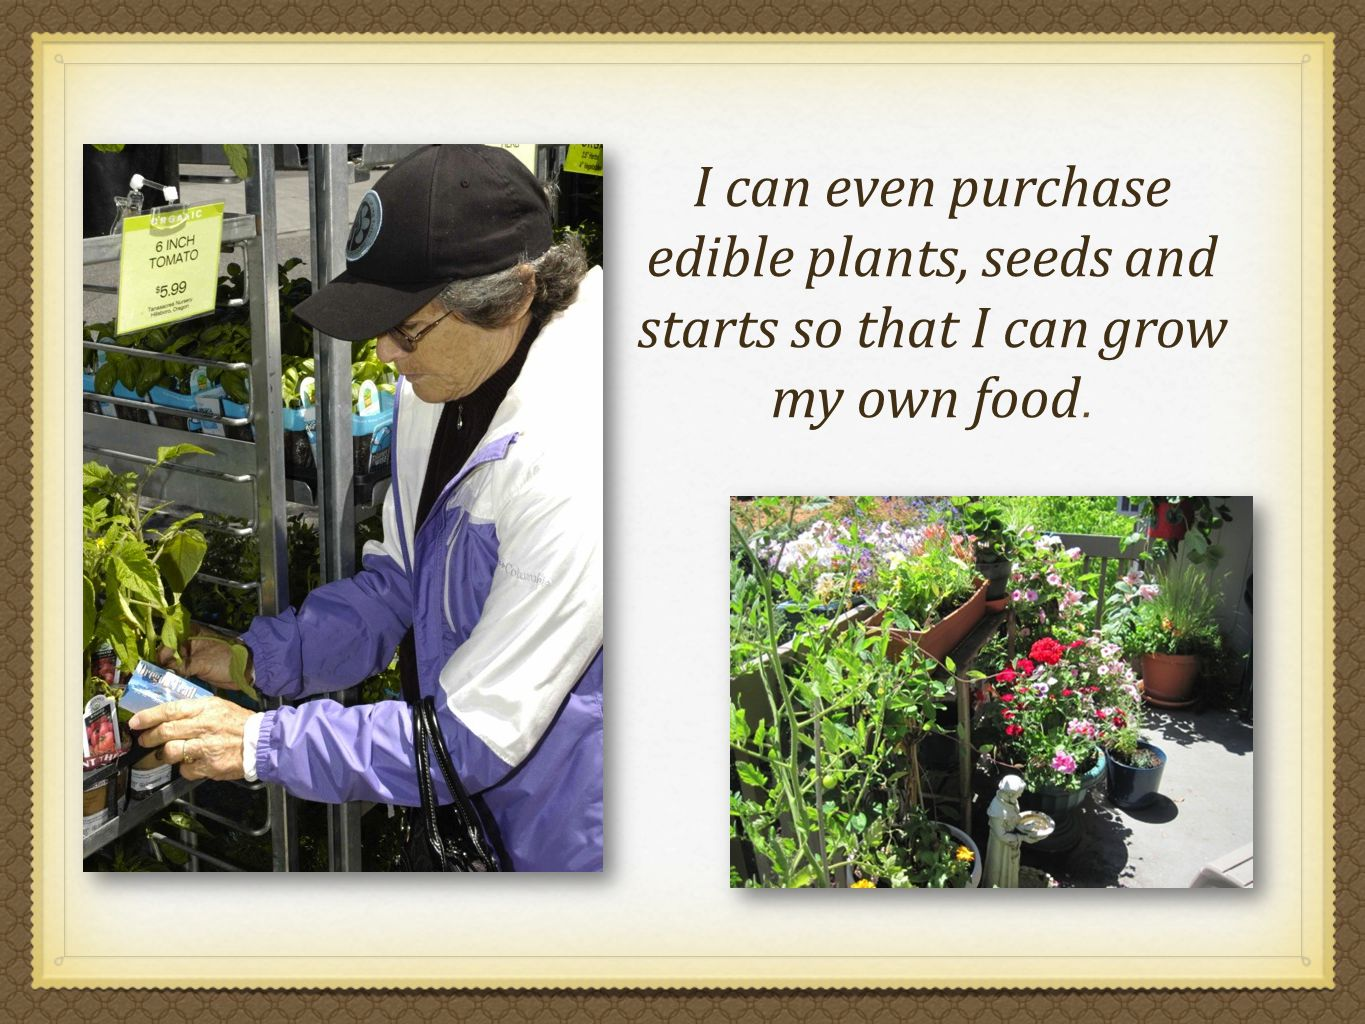 I can even purchase edible plants, seeds and starts so that I can grow my own food.